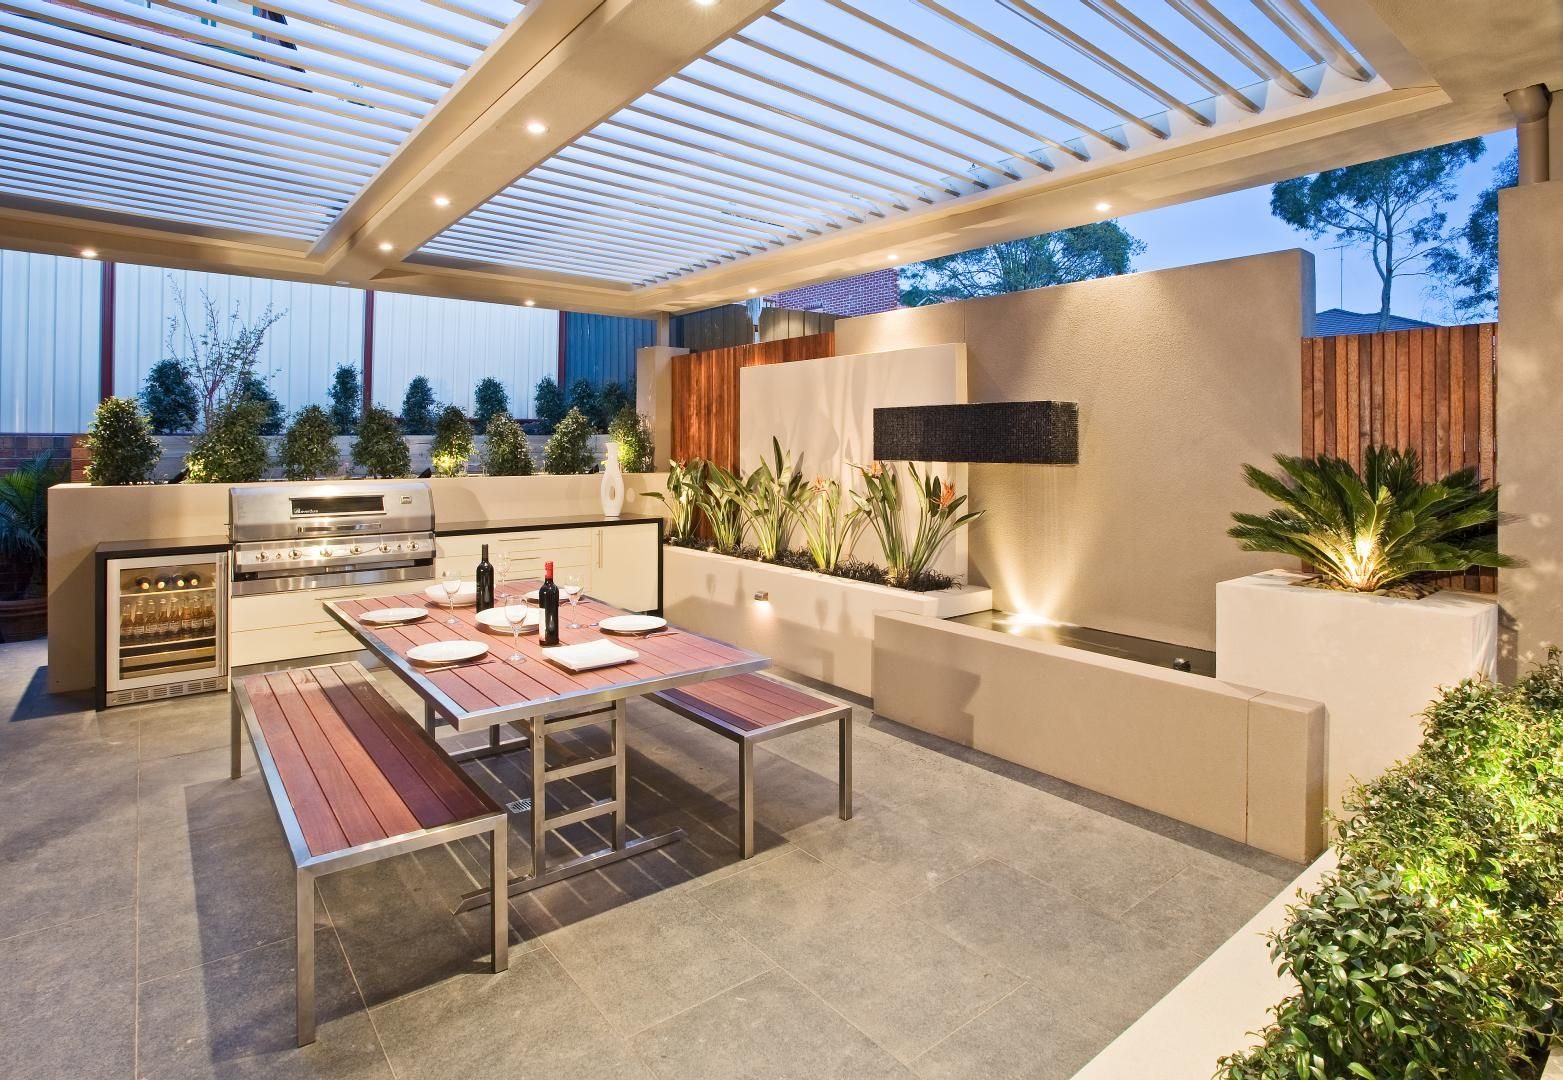 Outdoor entertaining area project by cos design Outdoor living areas images